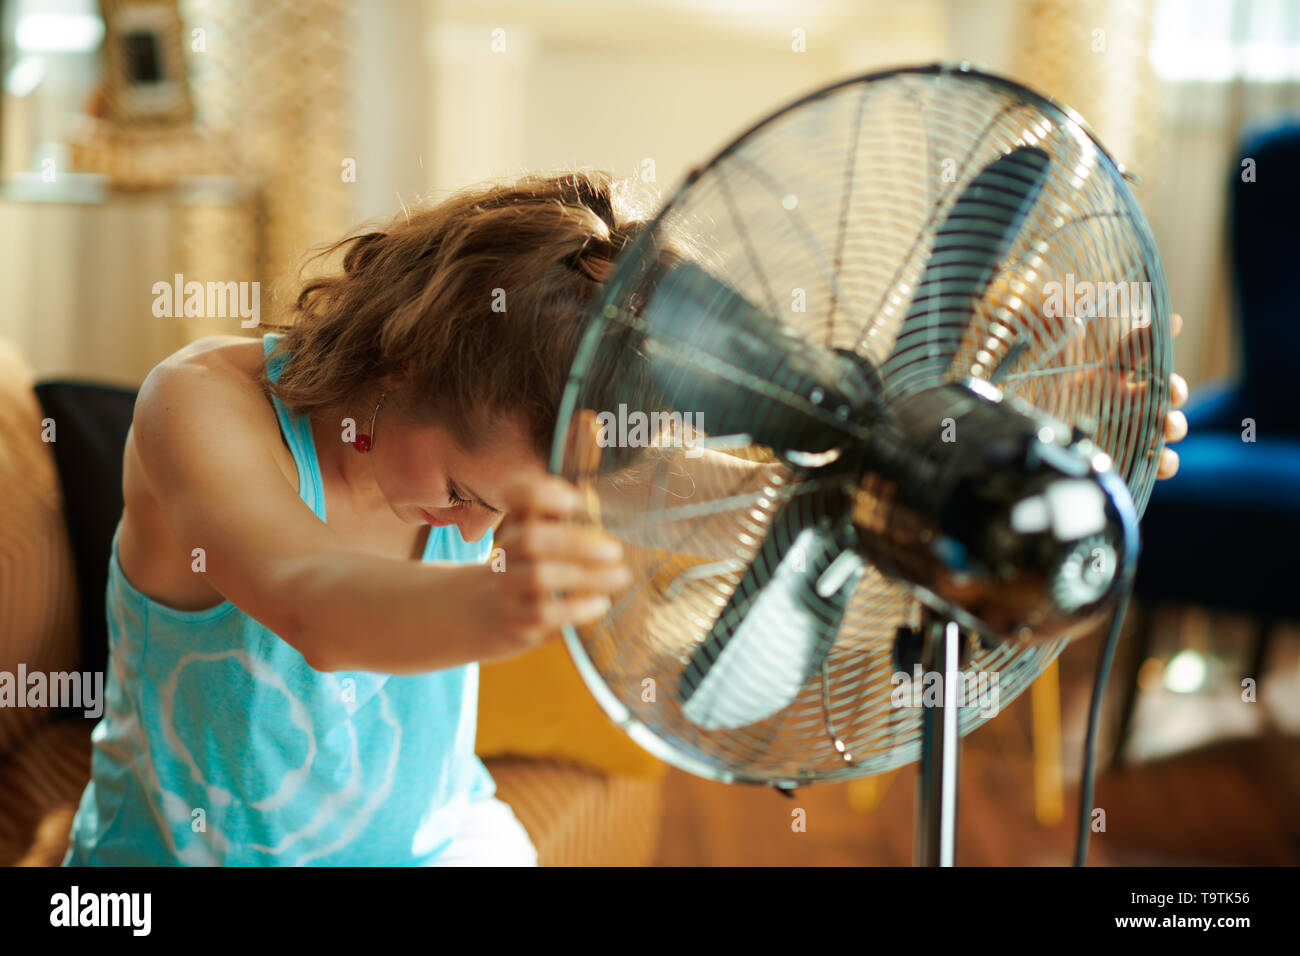 sad woman at modern home in sunny hot summer day showing victory gesture suffering from summer heat. - Stock Image